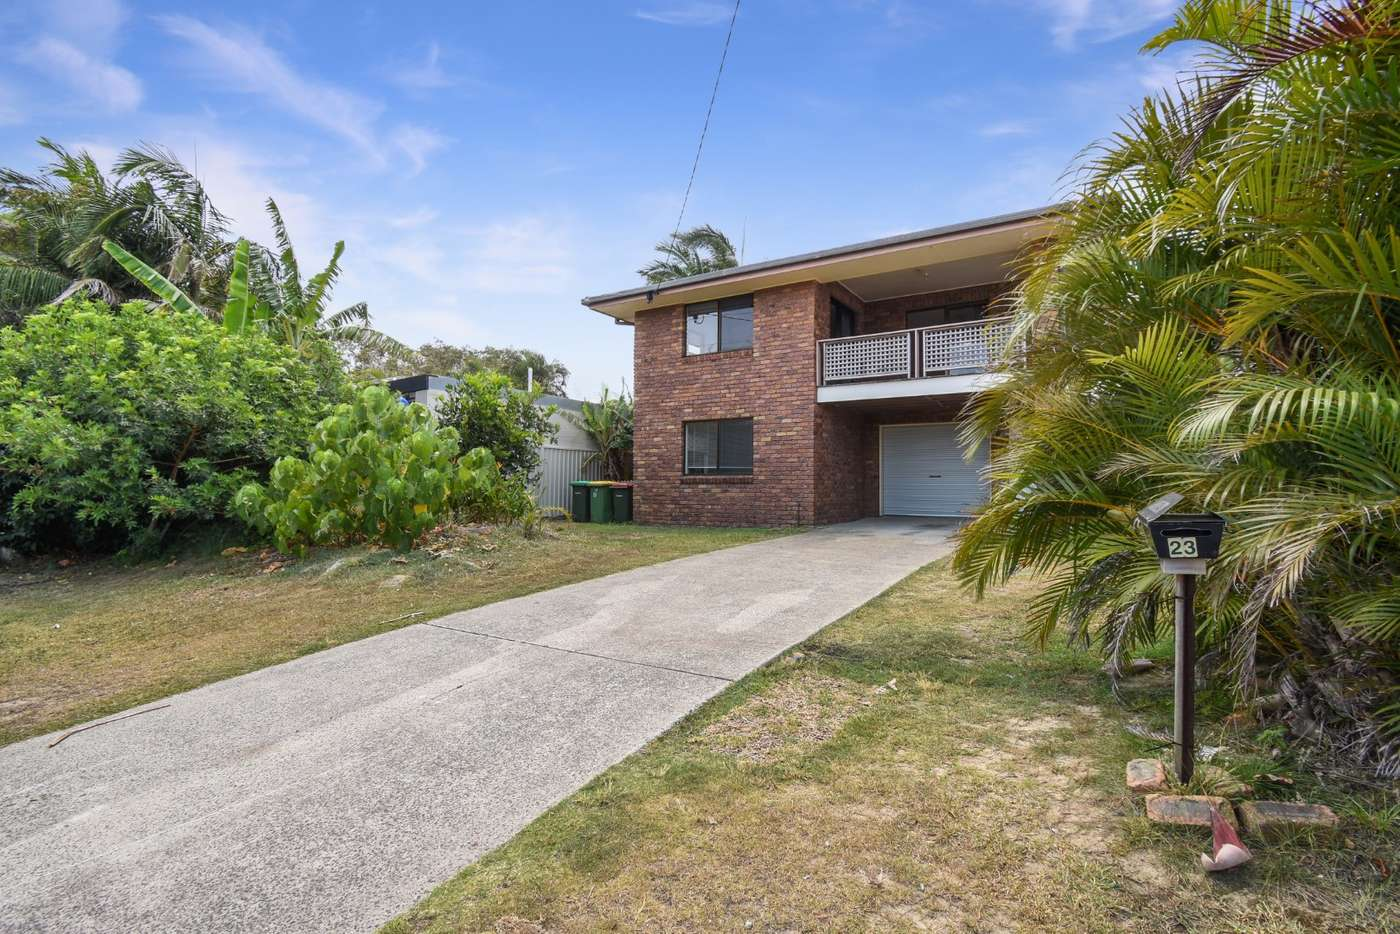 Main view of Homely house listing, 23 Currimundi Road, Currimundi QLD 4551